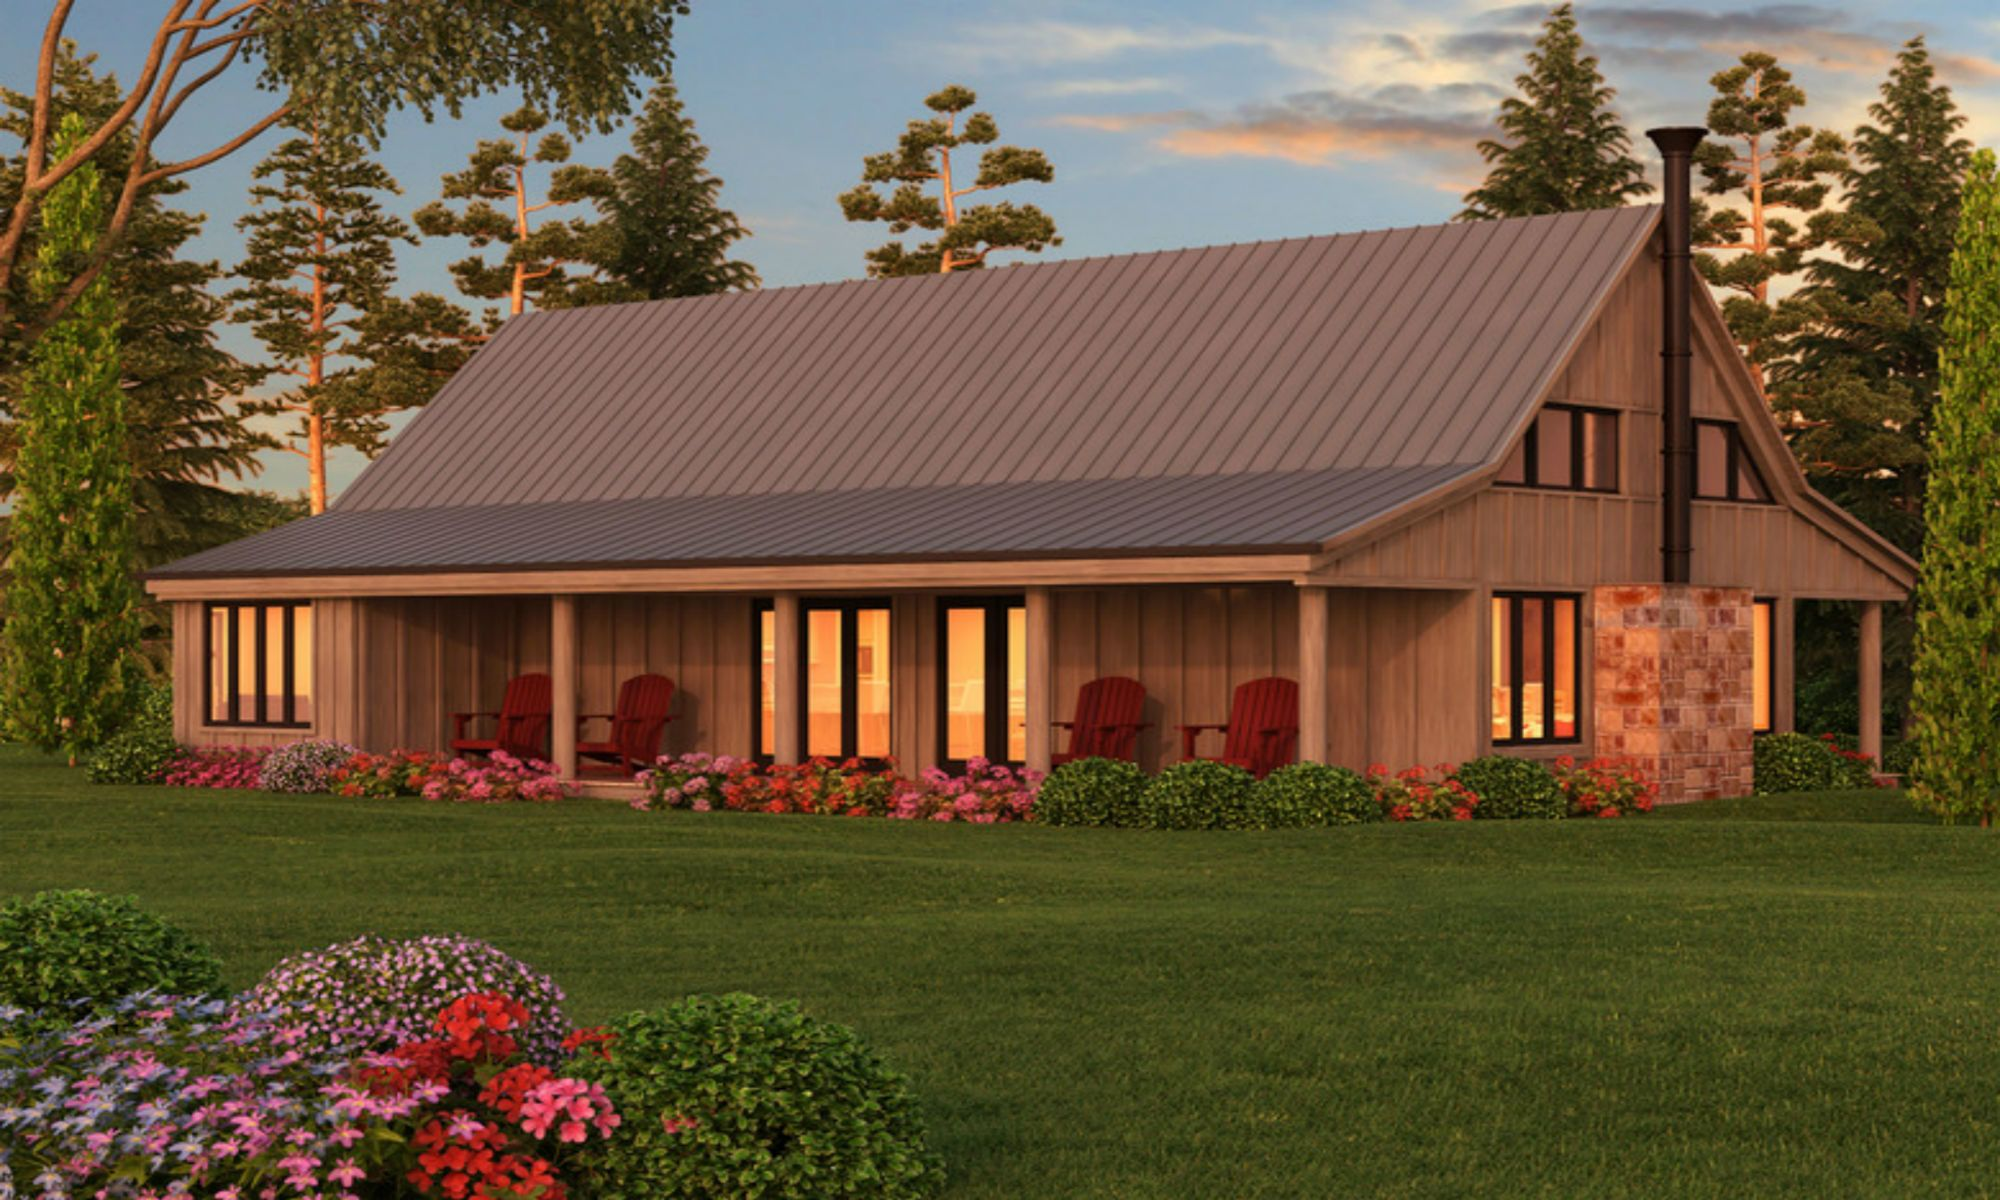 Pole barn homes pole barn homes pinterest barn Metal pole barn homes plans